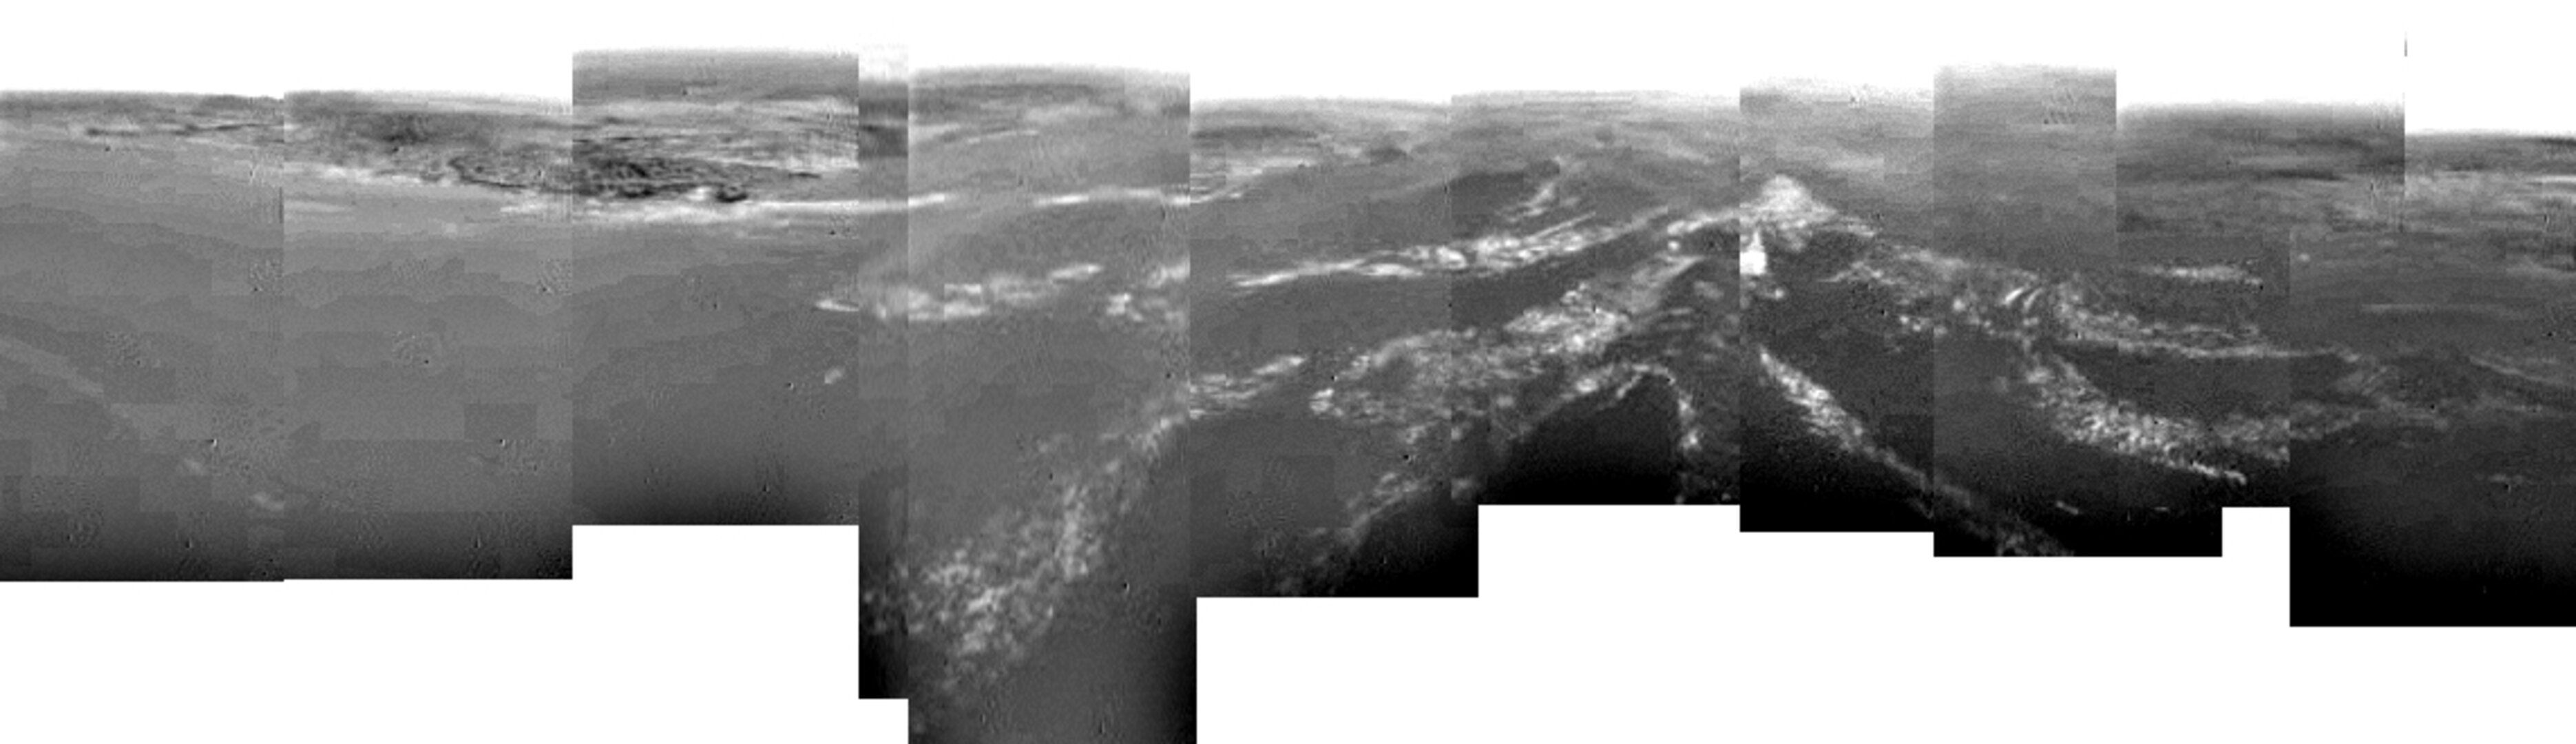 Composite of Titan's surface seen during descent